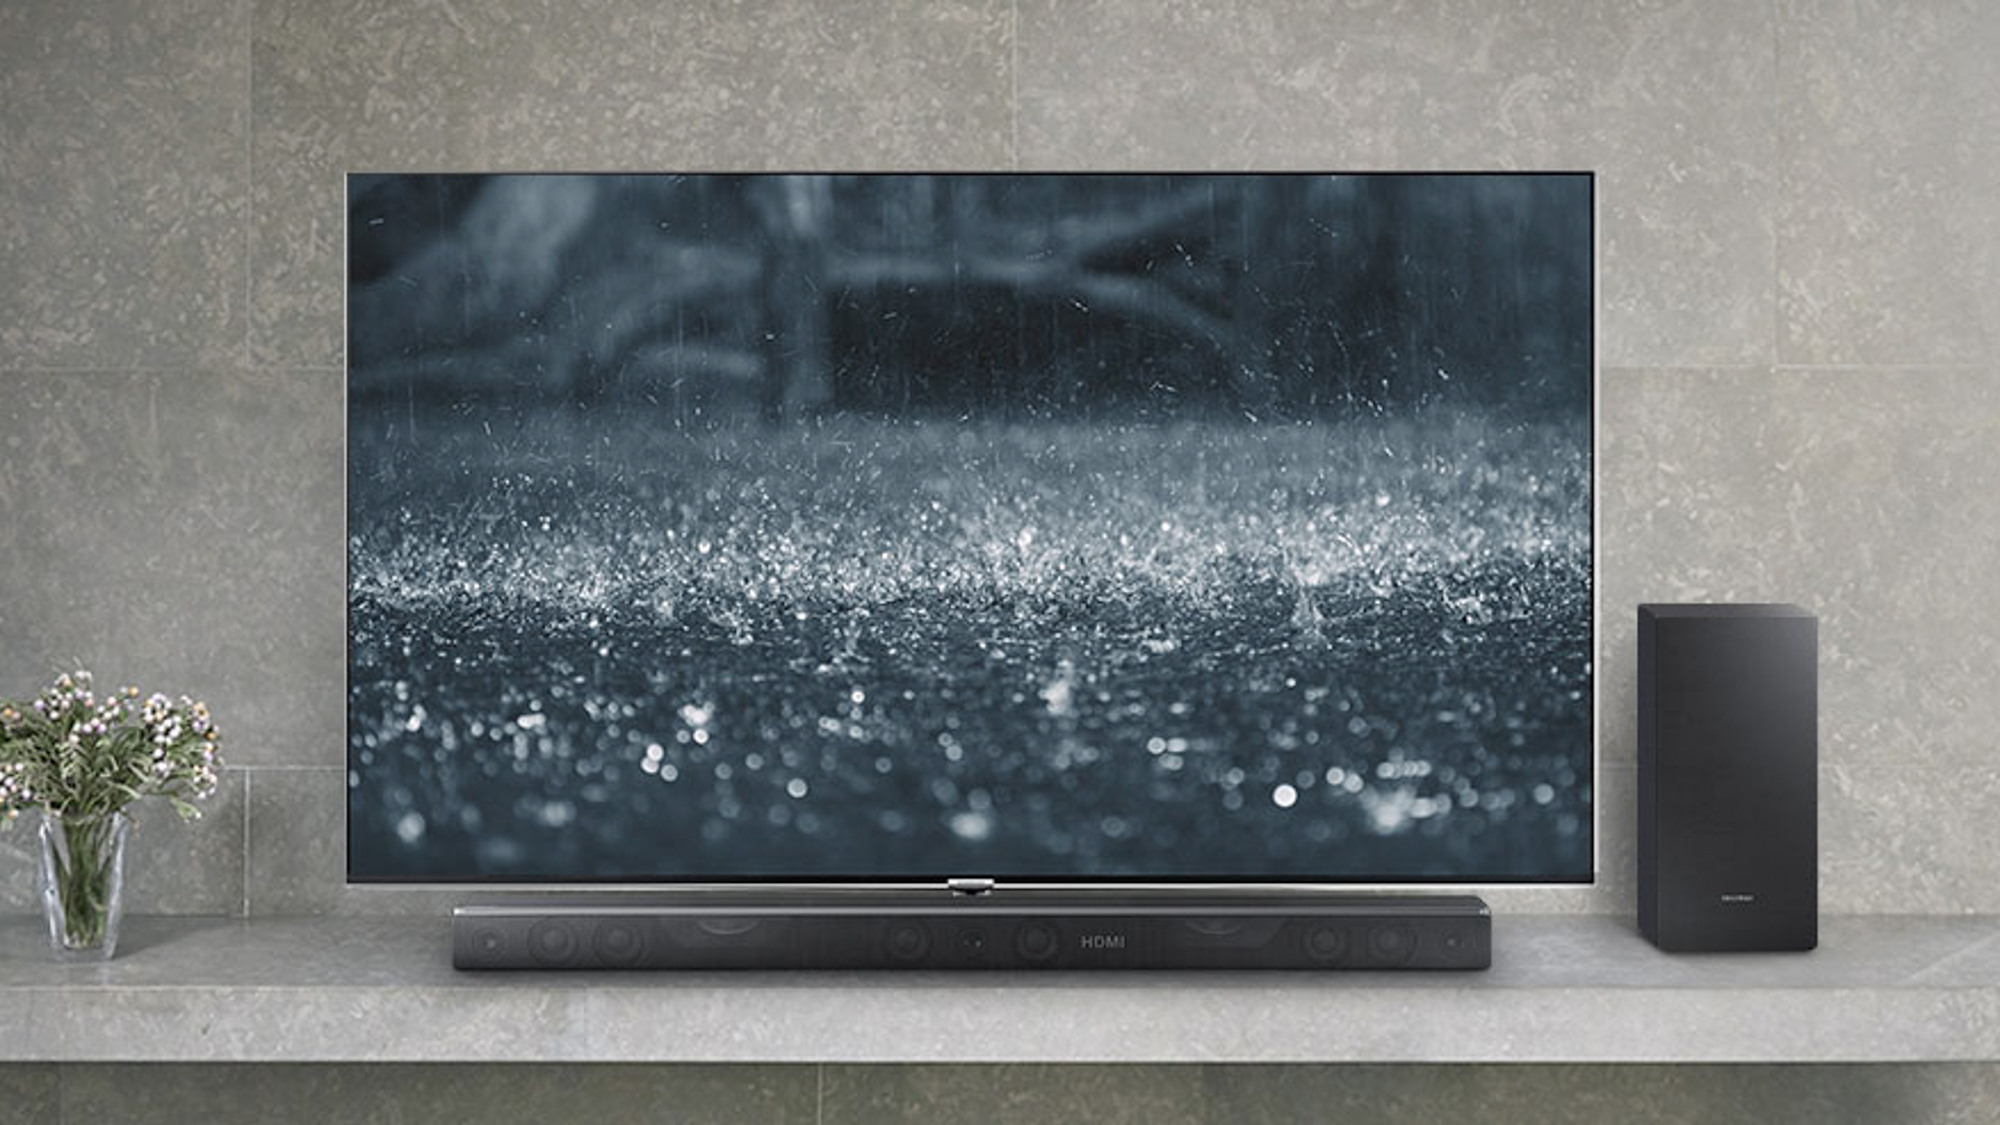 There Arenu0027t Many Atmos Compatible Soundbars On The Market, And Most Sit At  The Upper End Of The Price Spectrum, But The Samsung Is, Currently, ...